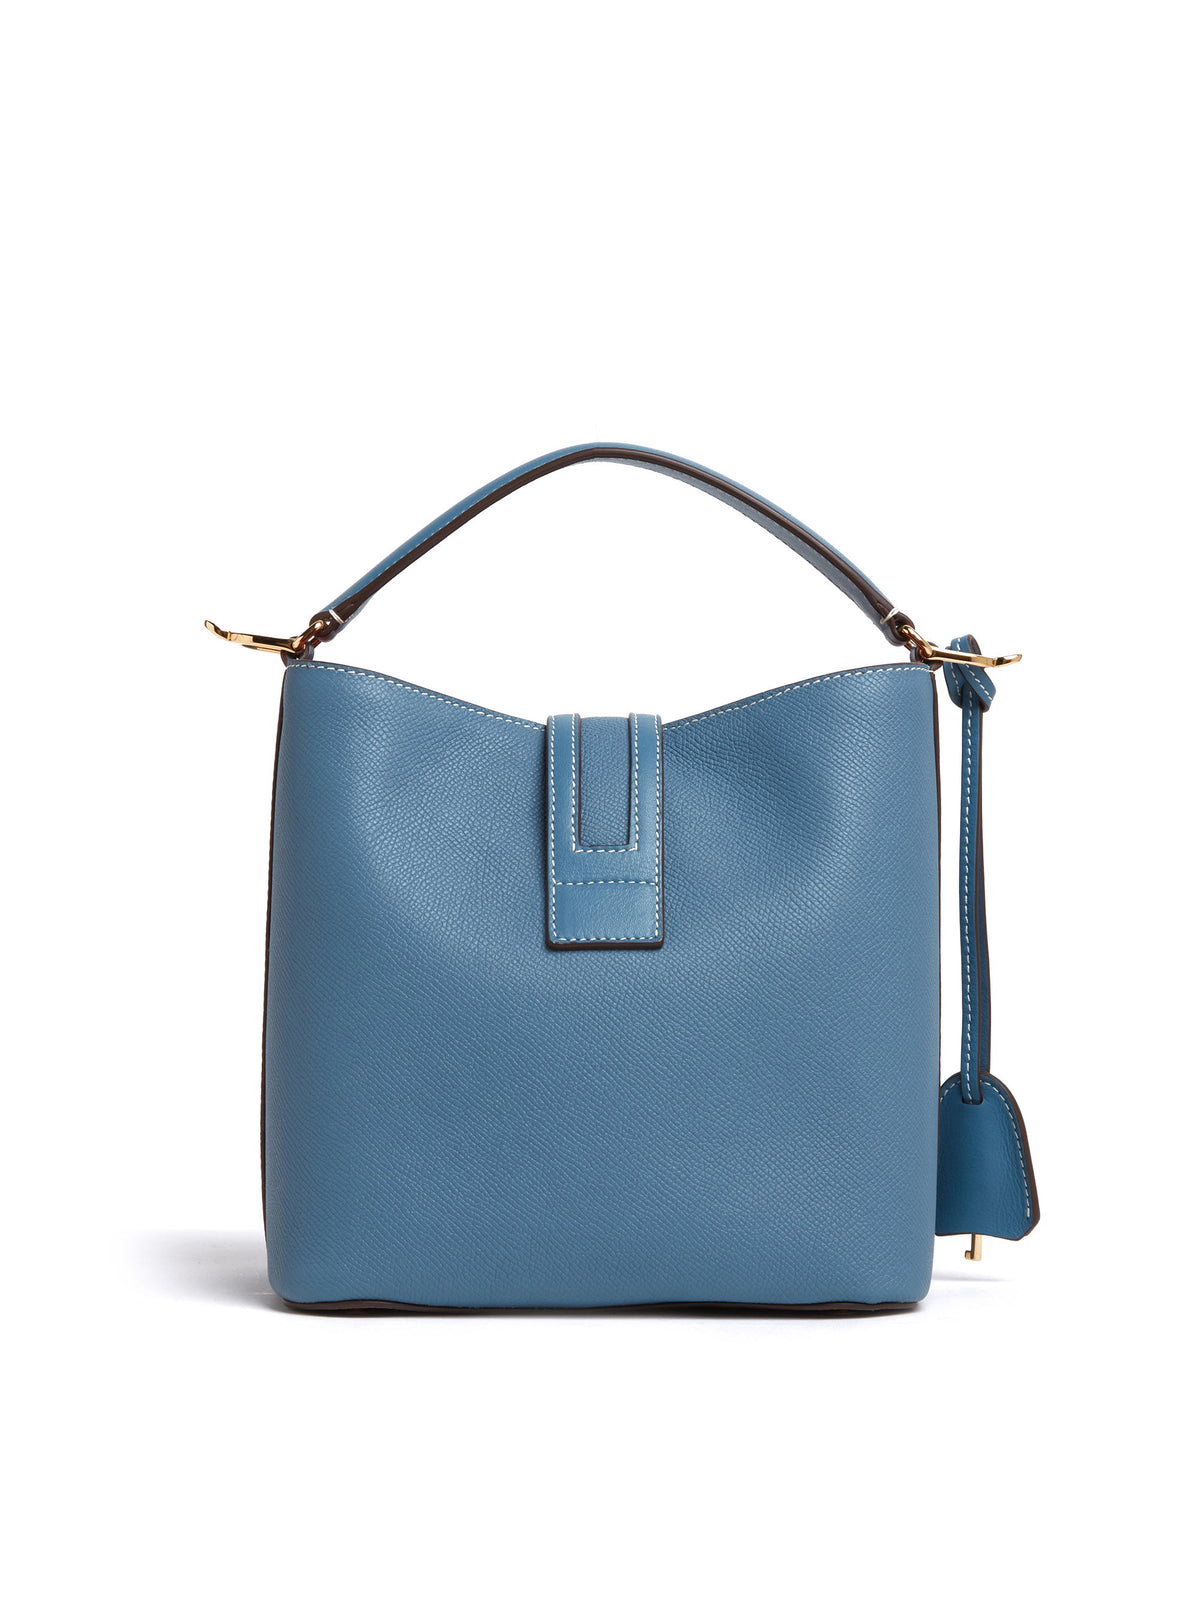 Murphy Small Leather Bucket Bag